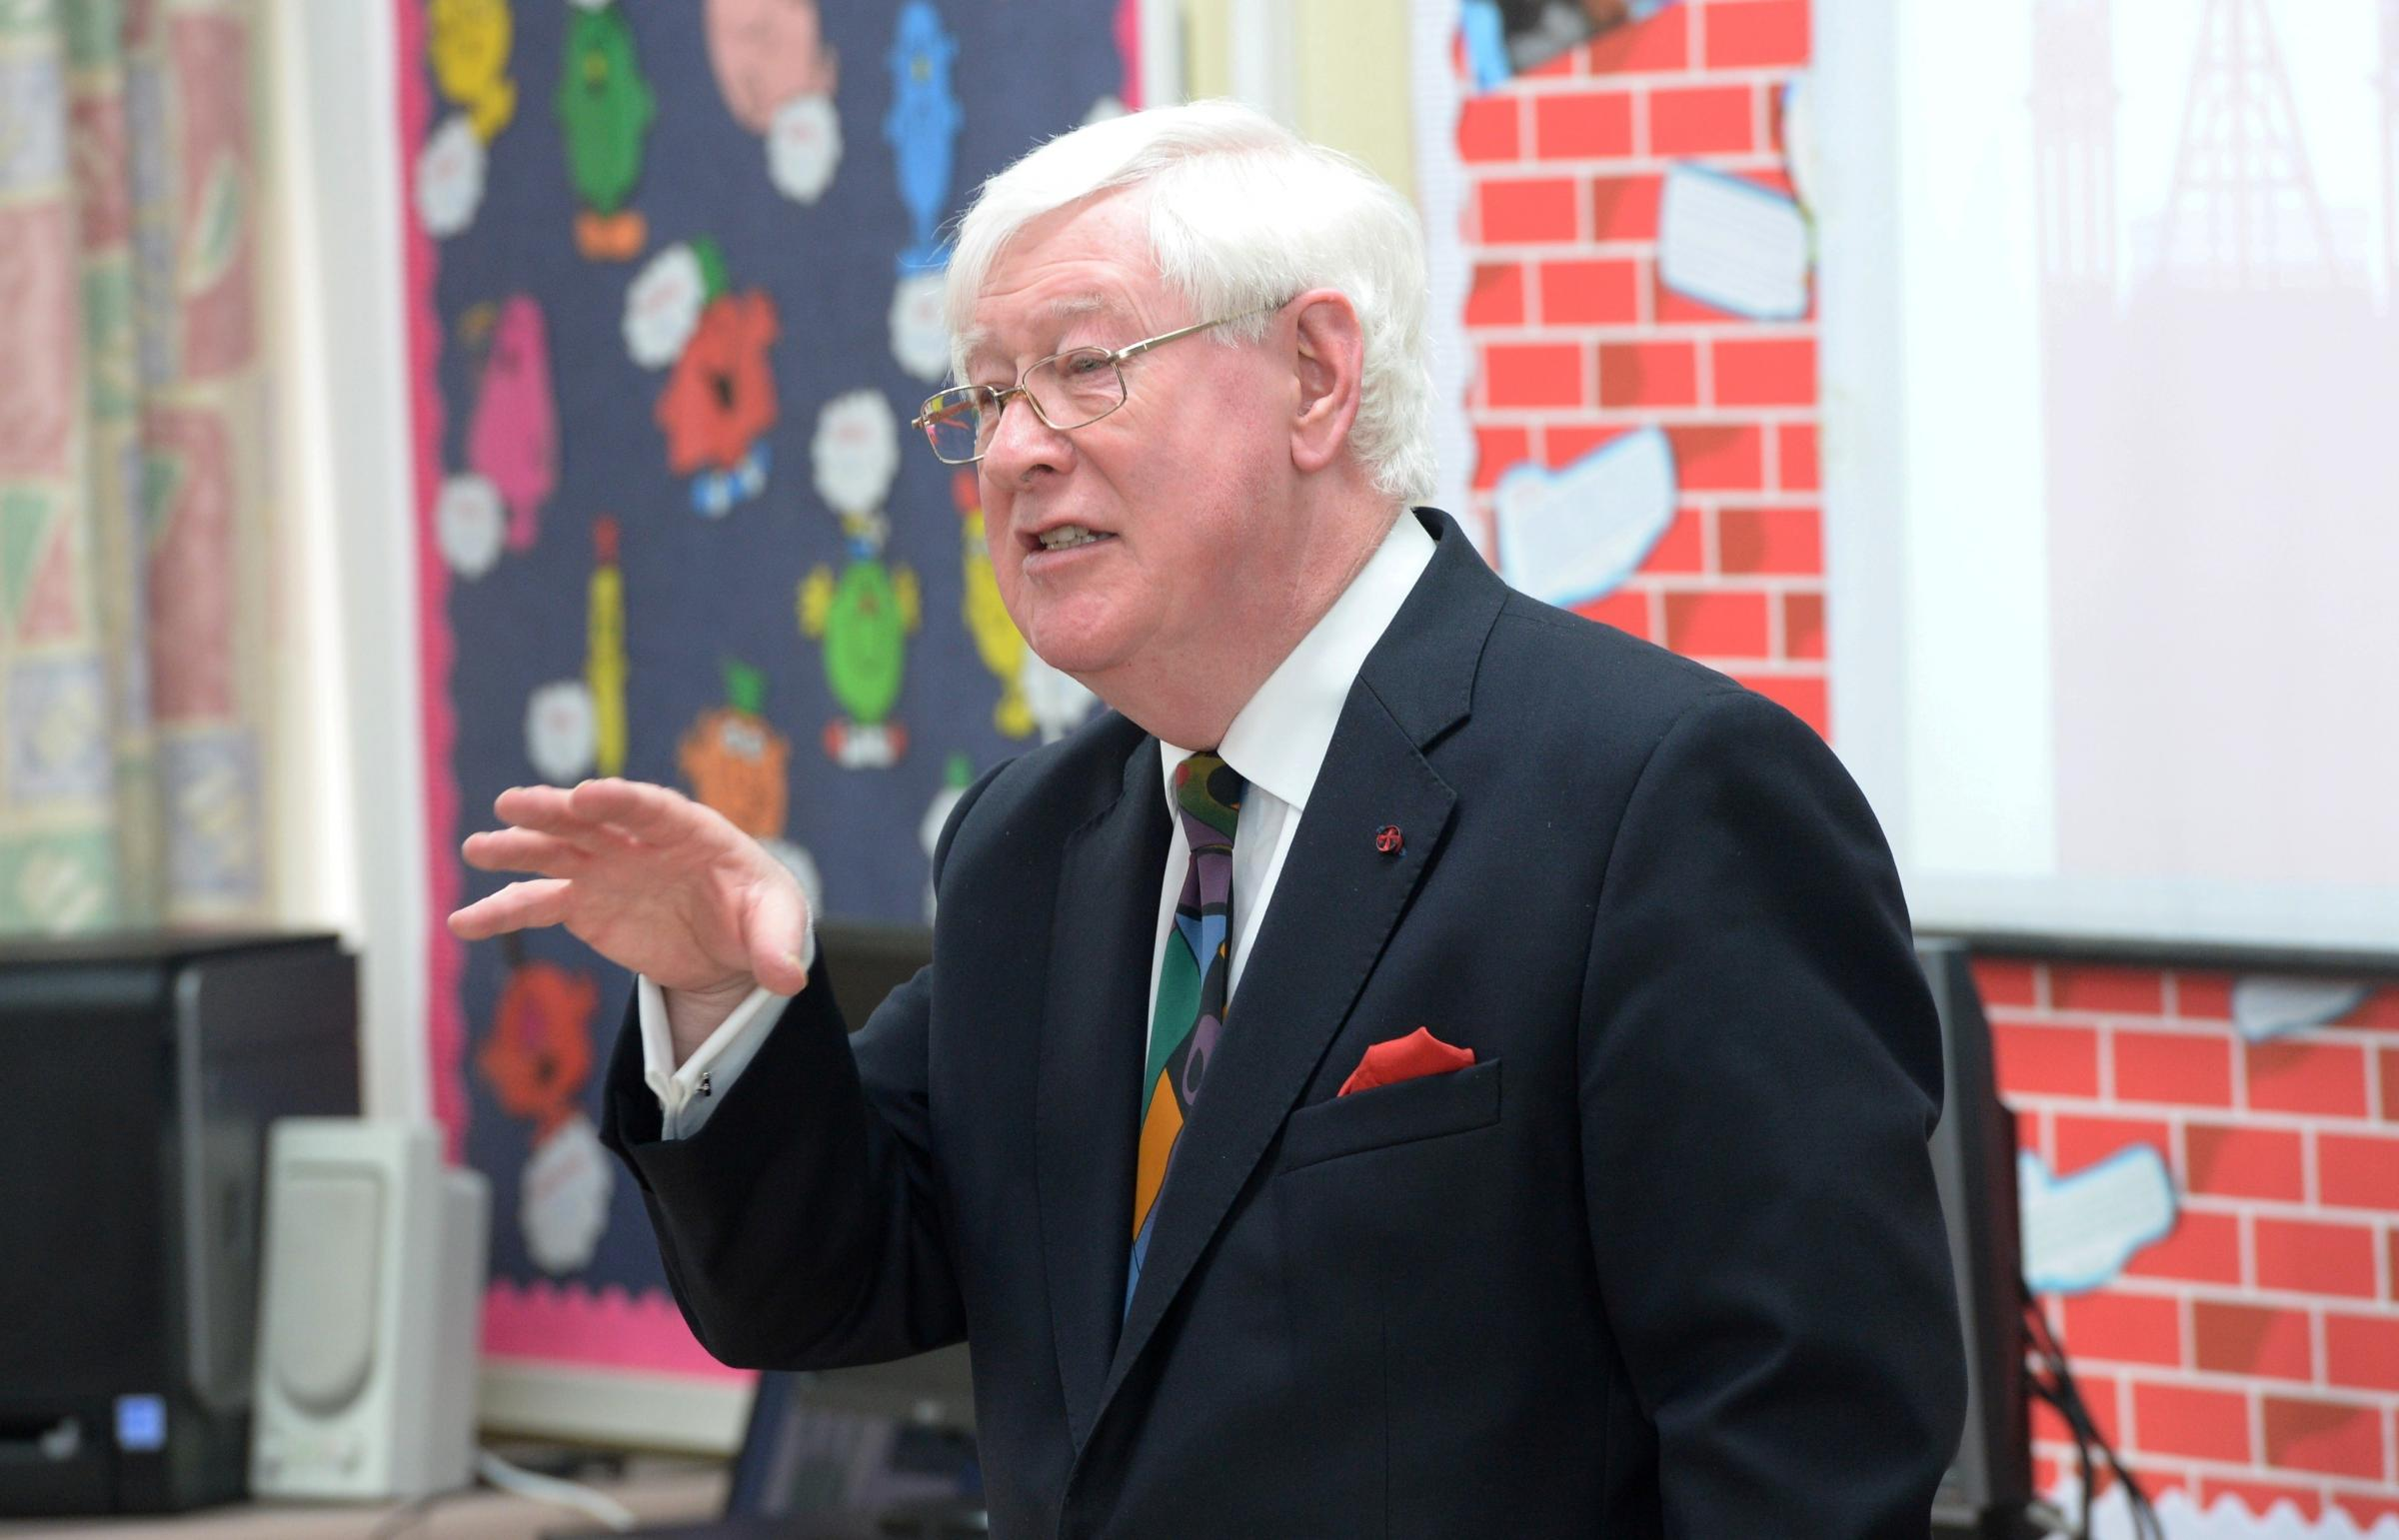 Lord Touhig talks politics with Oakdale pupils